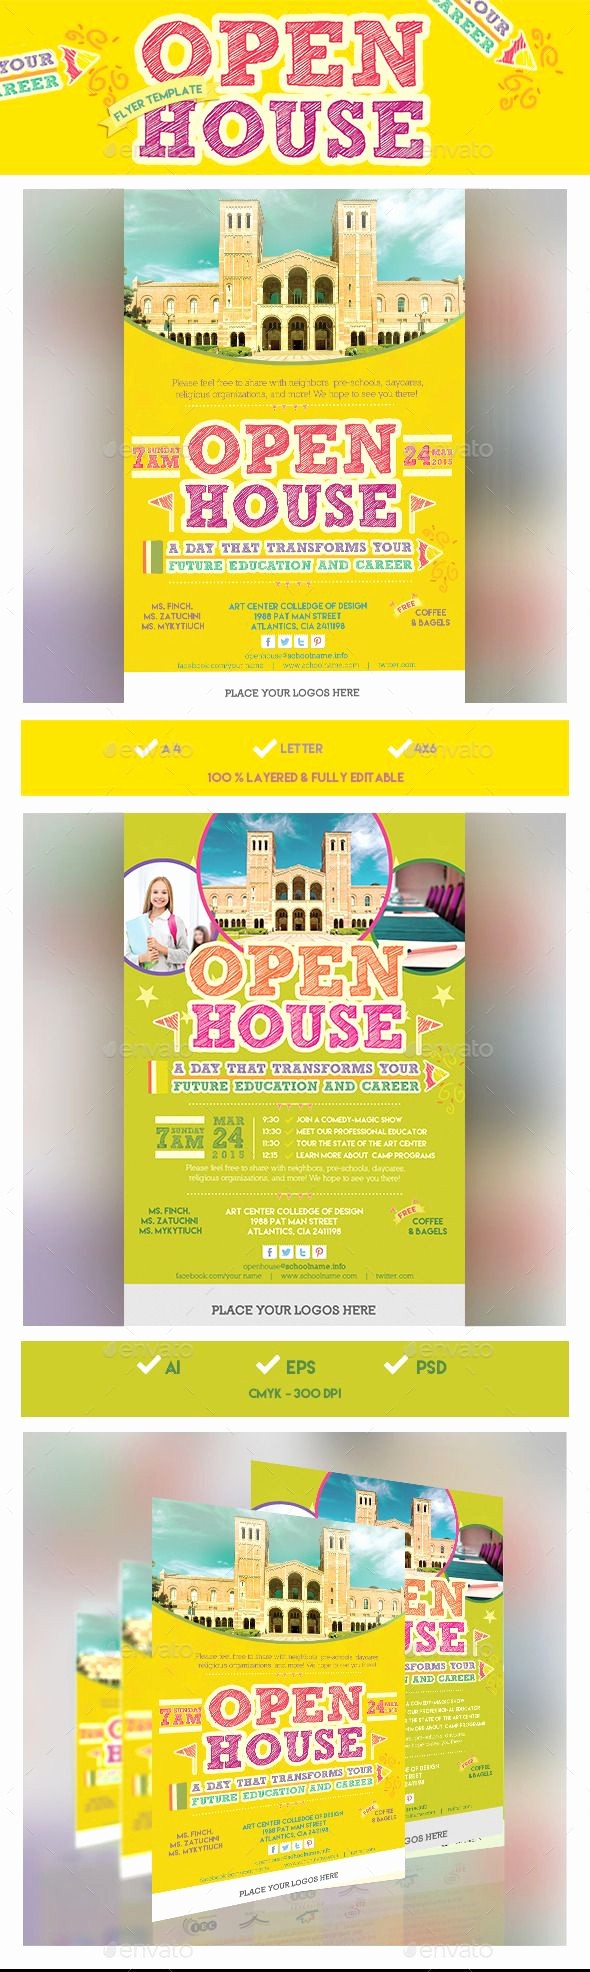 Open House Flyers for School Fresh 1000 Ideas About Open House Invitation On Pinterest